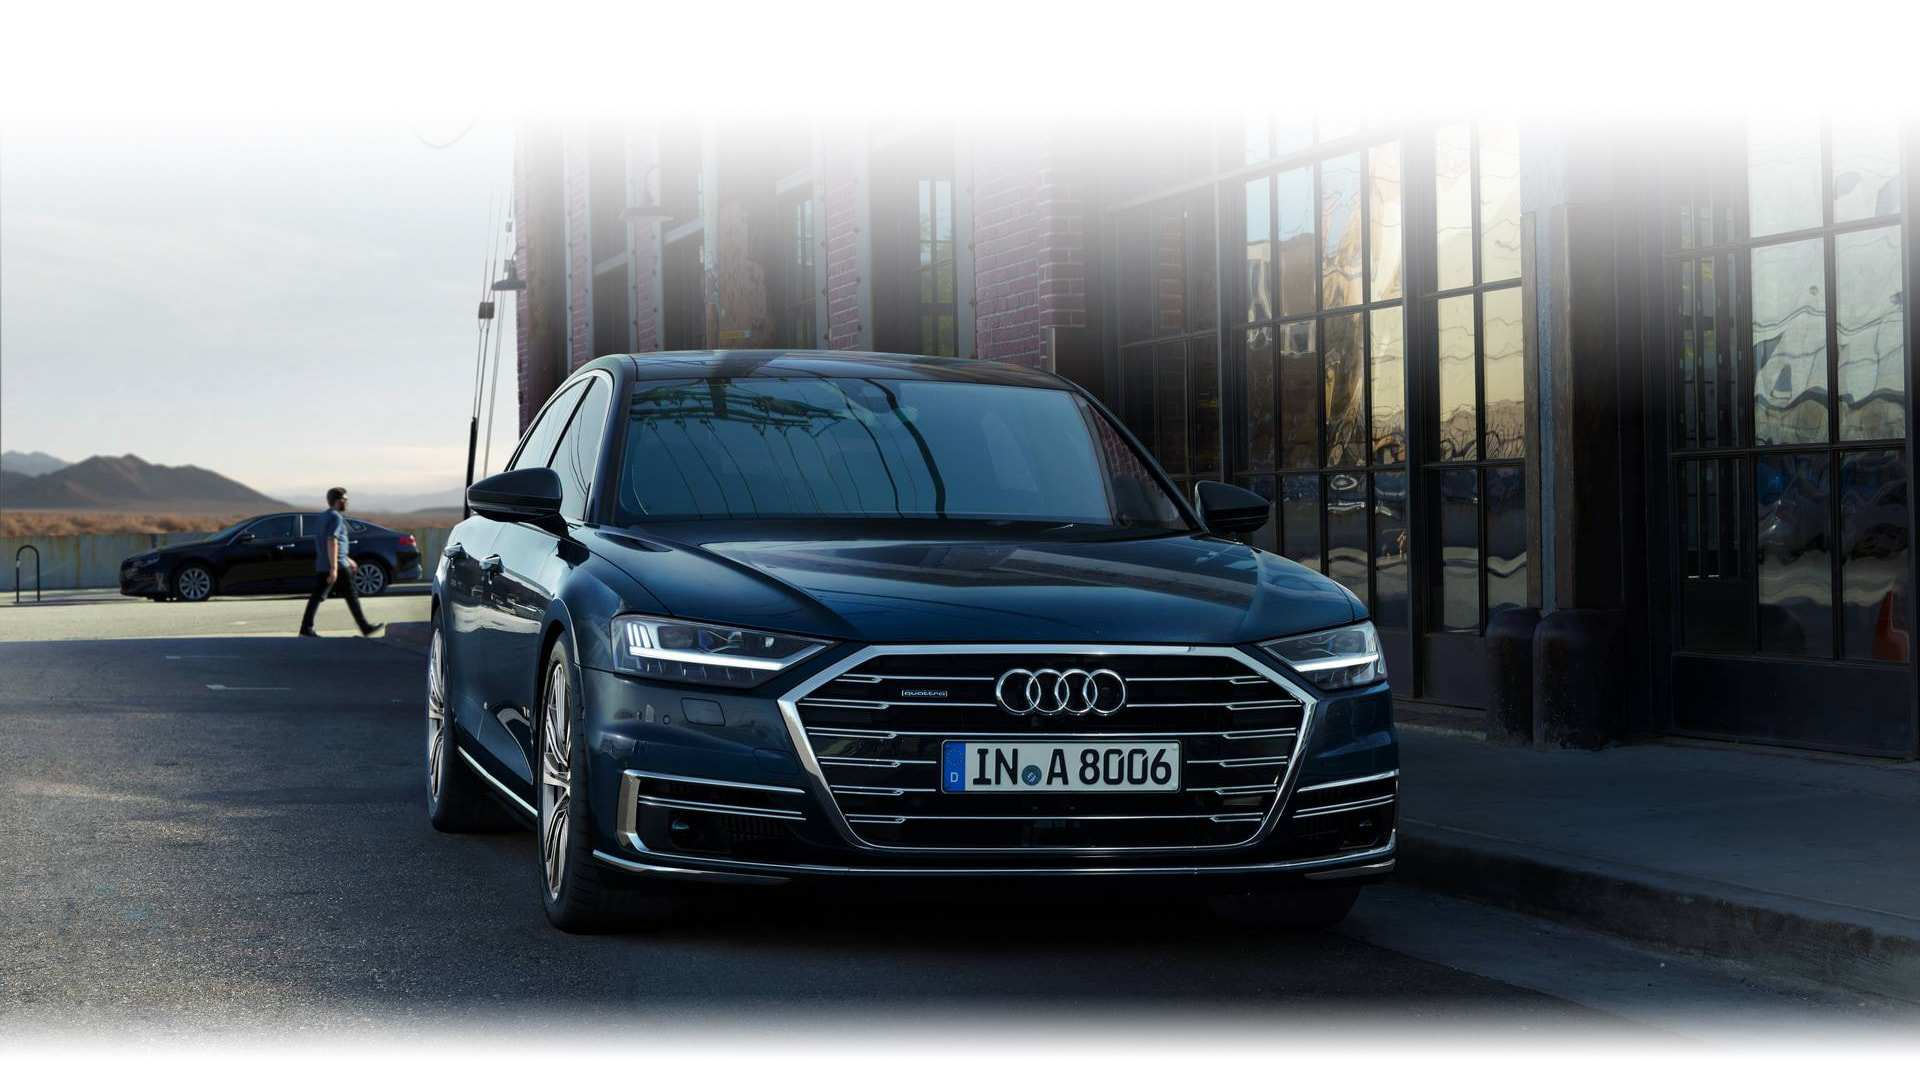 75 The Best 2019 Audi A8 L Exterior And Interior